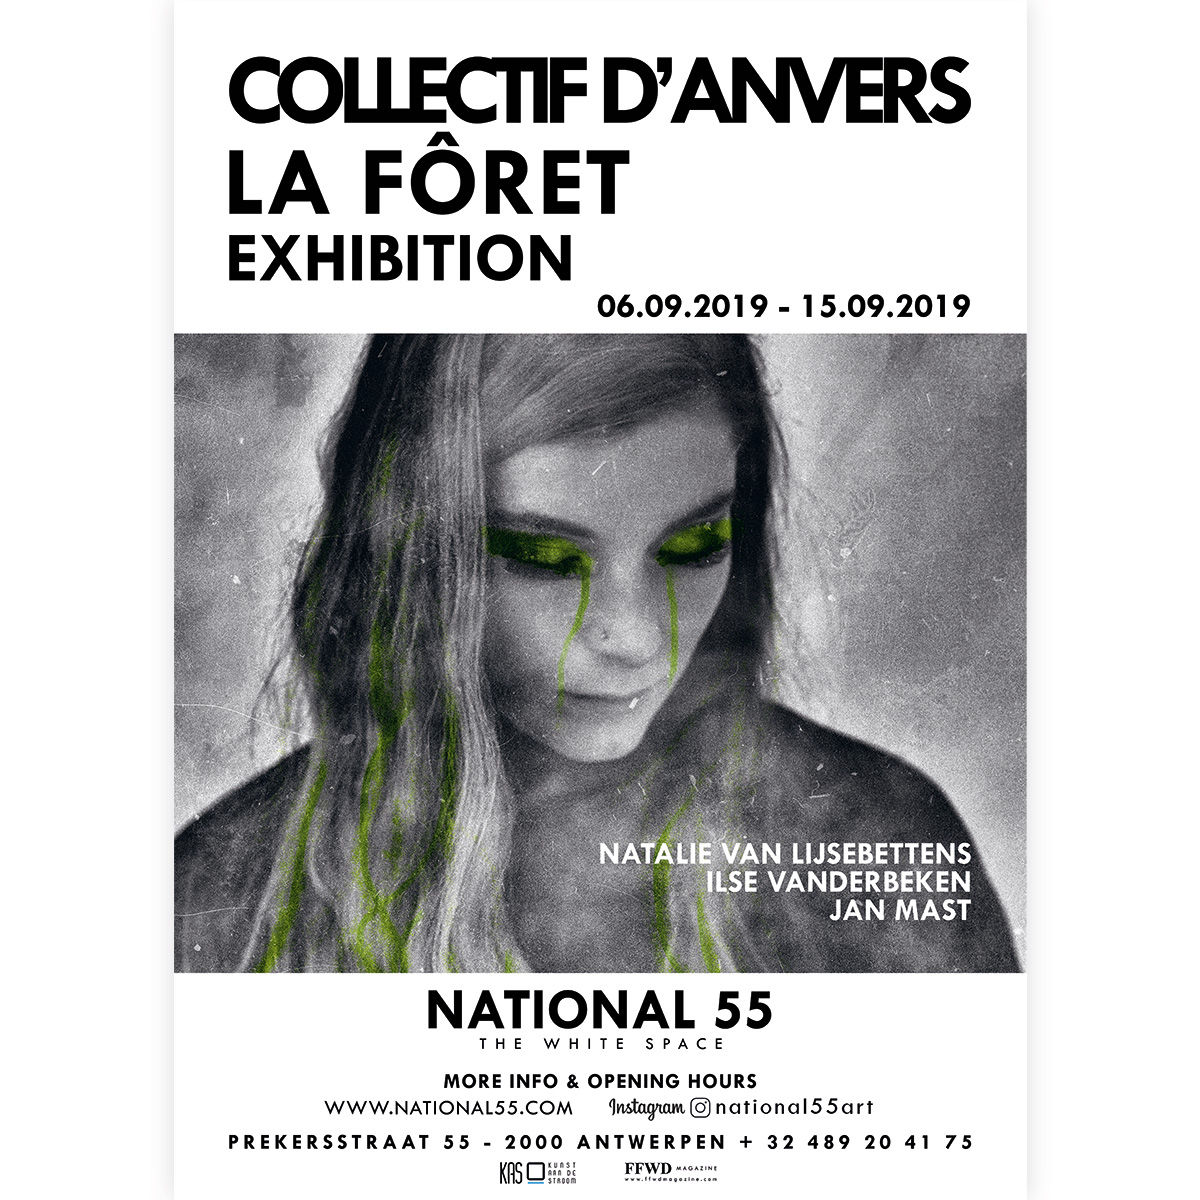 COLLECTIF d'ANVERS